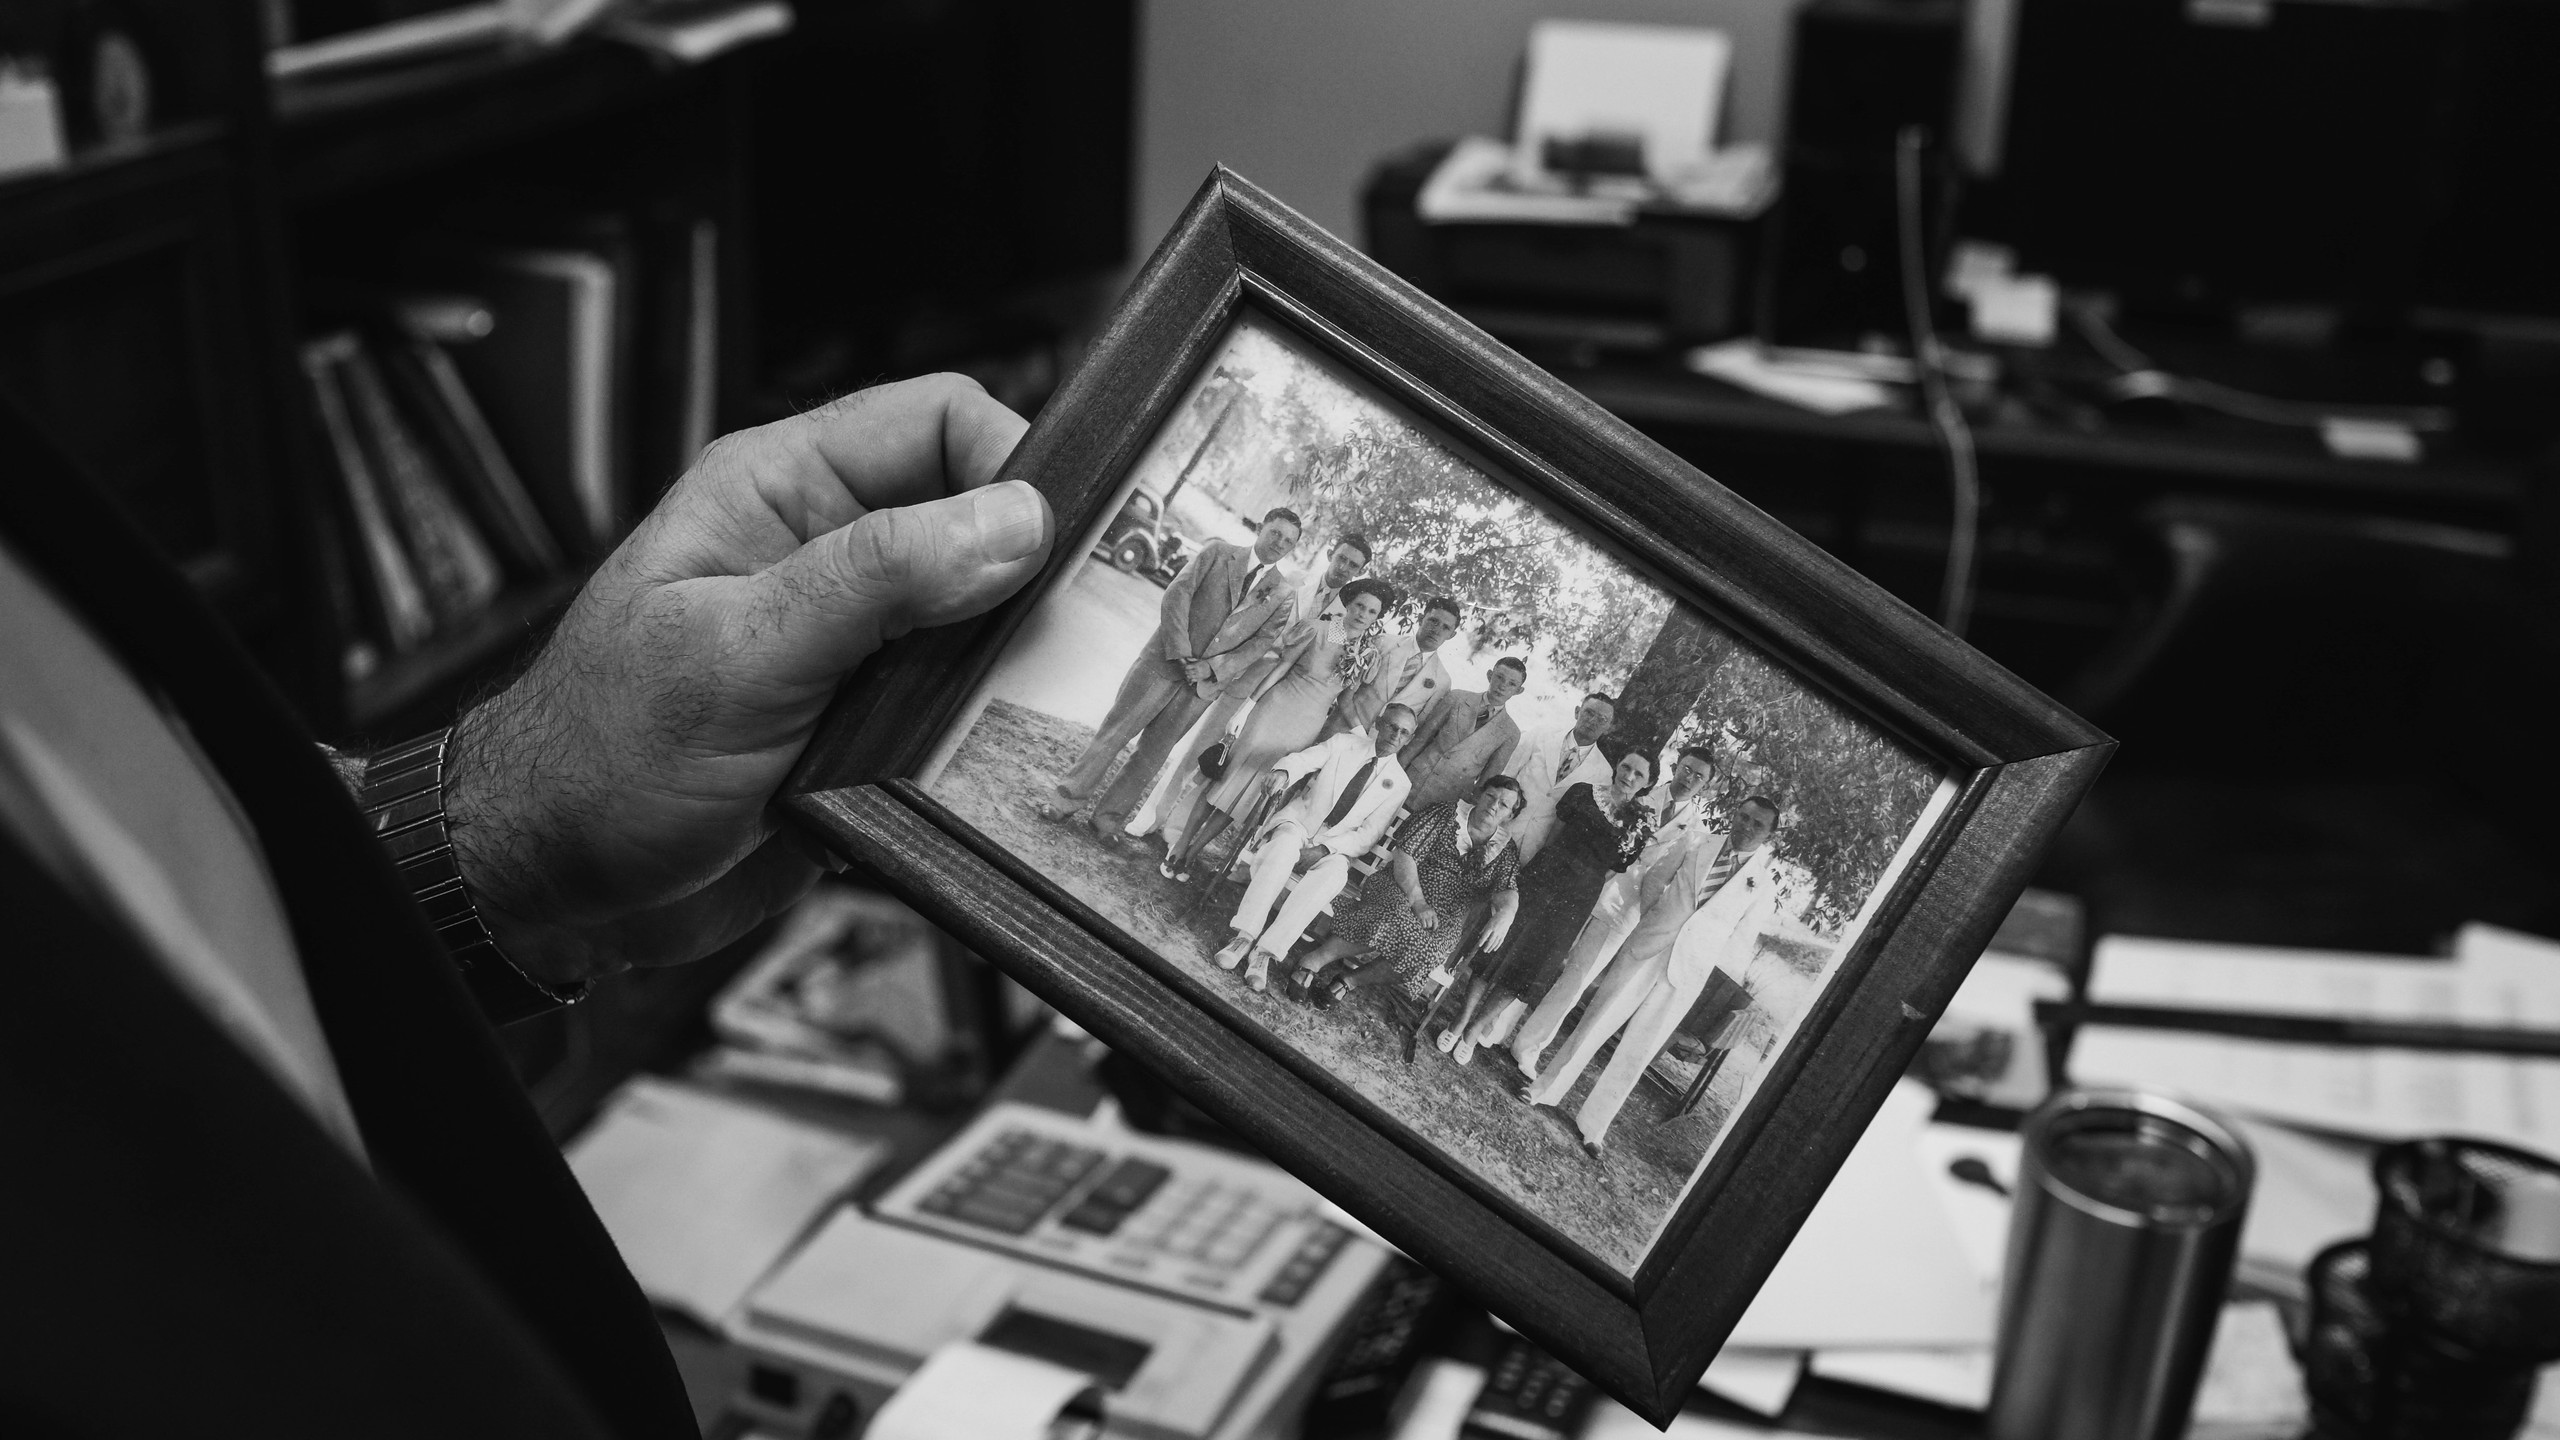 Hunter Jordan holds a picture of his family who founded Jordan Funeral Home. Many funeral homes are family businesses. As a taboo profession, many people do not think to go into this line of work if they did not grow up around it.